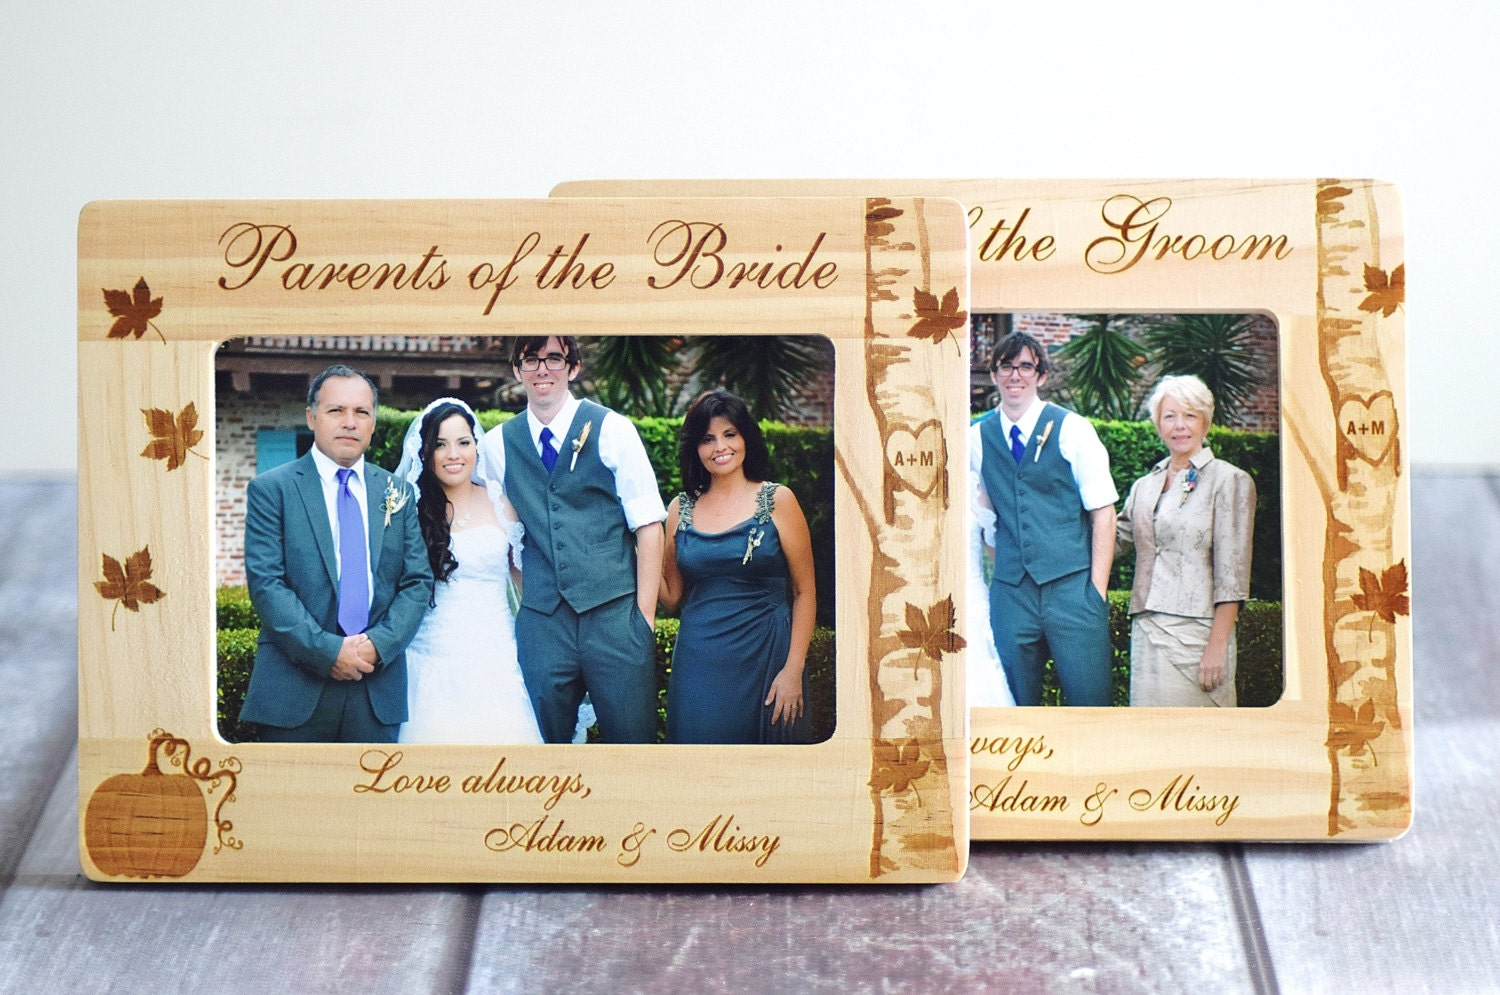 Wedding Gifts For Bride And Groom From Parents: Parents Wedding Gift Bride & Groom WEDDING FRAME SET Parents